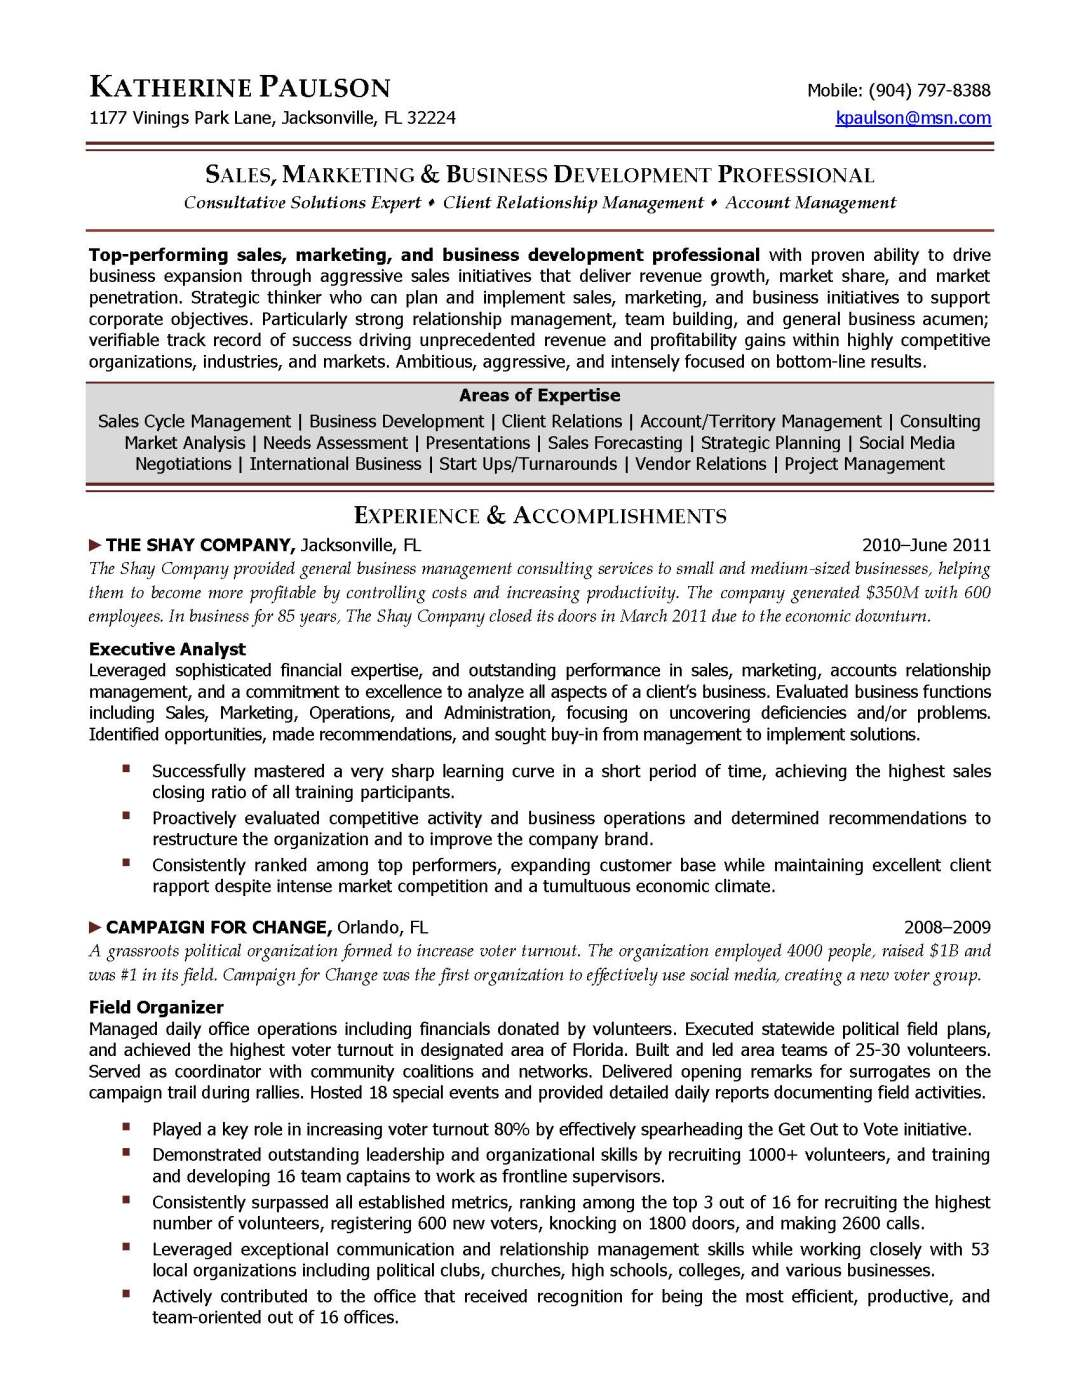 business development director resume sample provided by elite resume writing services - Business Development Resume Sample